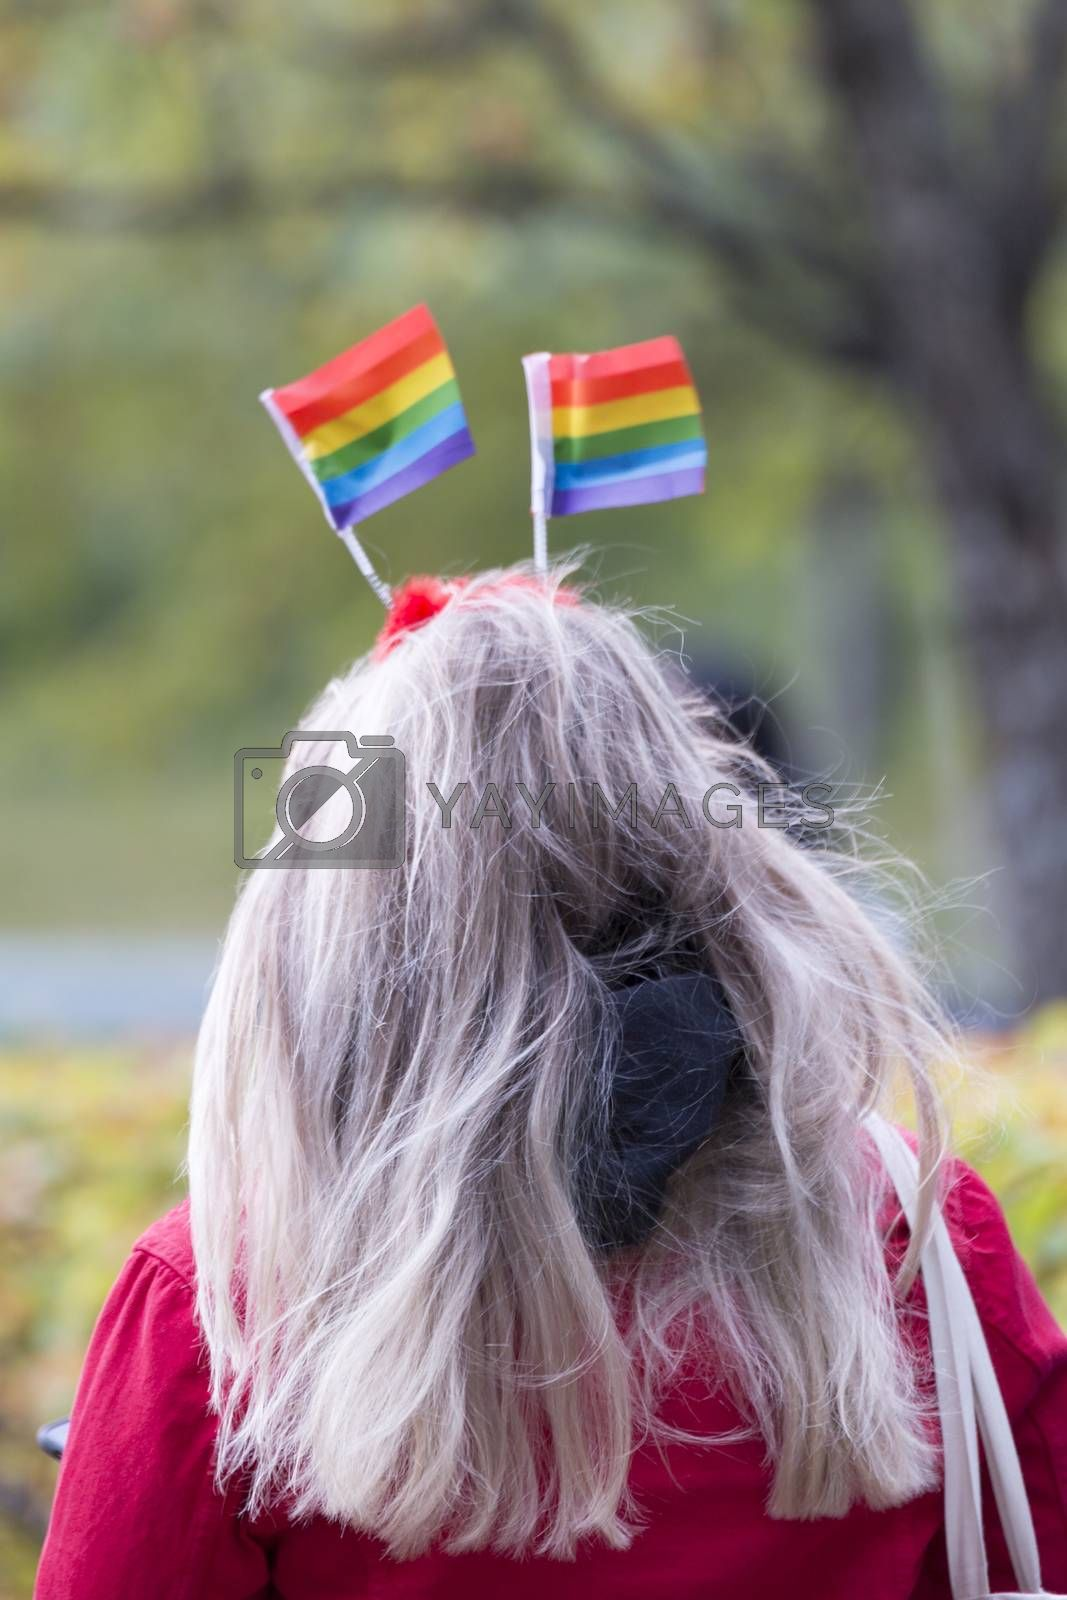 Royalty free image of Female with Rainbow Pride Flags in her Hair by Emmoth